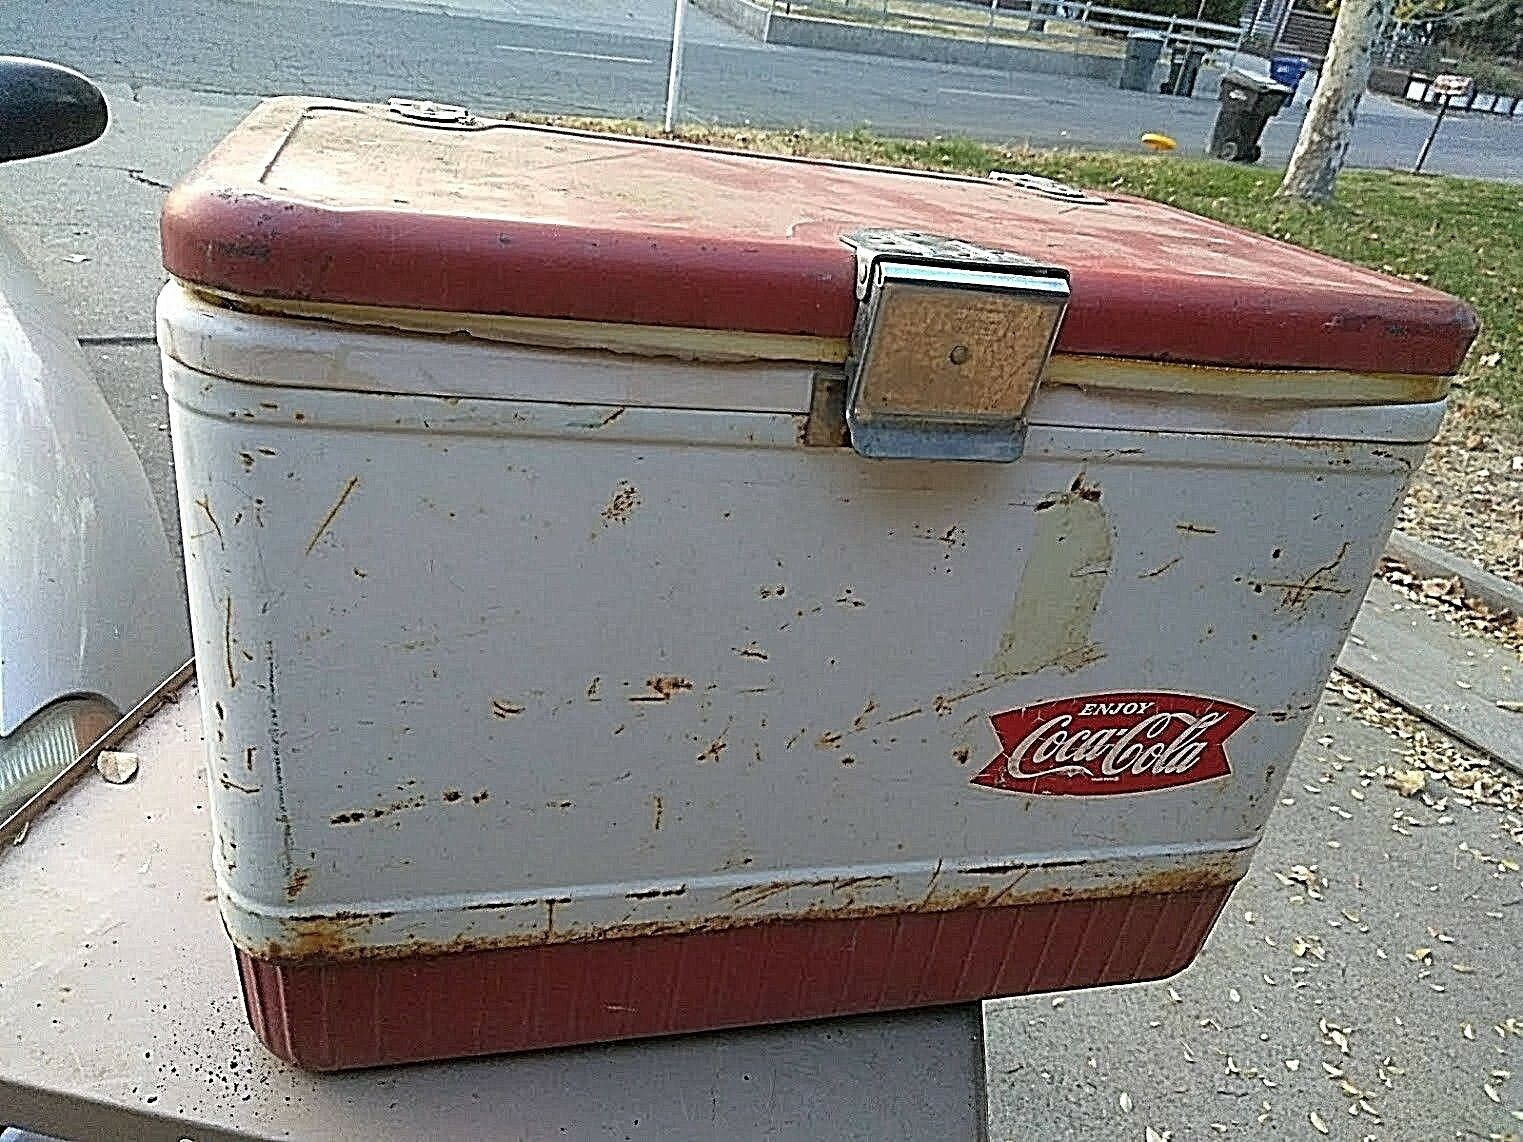 Rare Distressed True Vintage Coleman Metal Cooler Coca Cola Cooler Metal Ice Chest Movie Prop d3901f